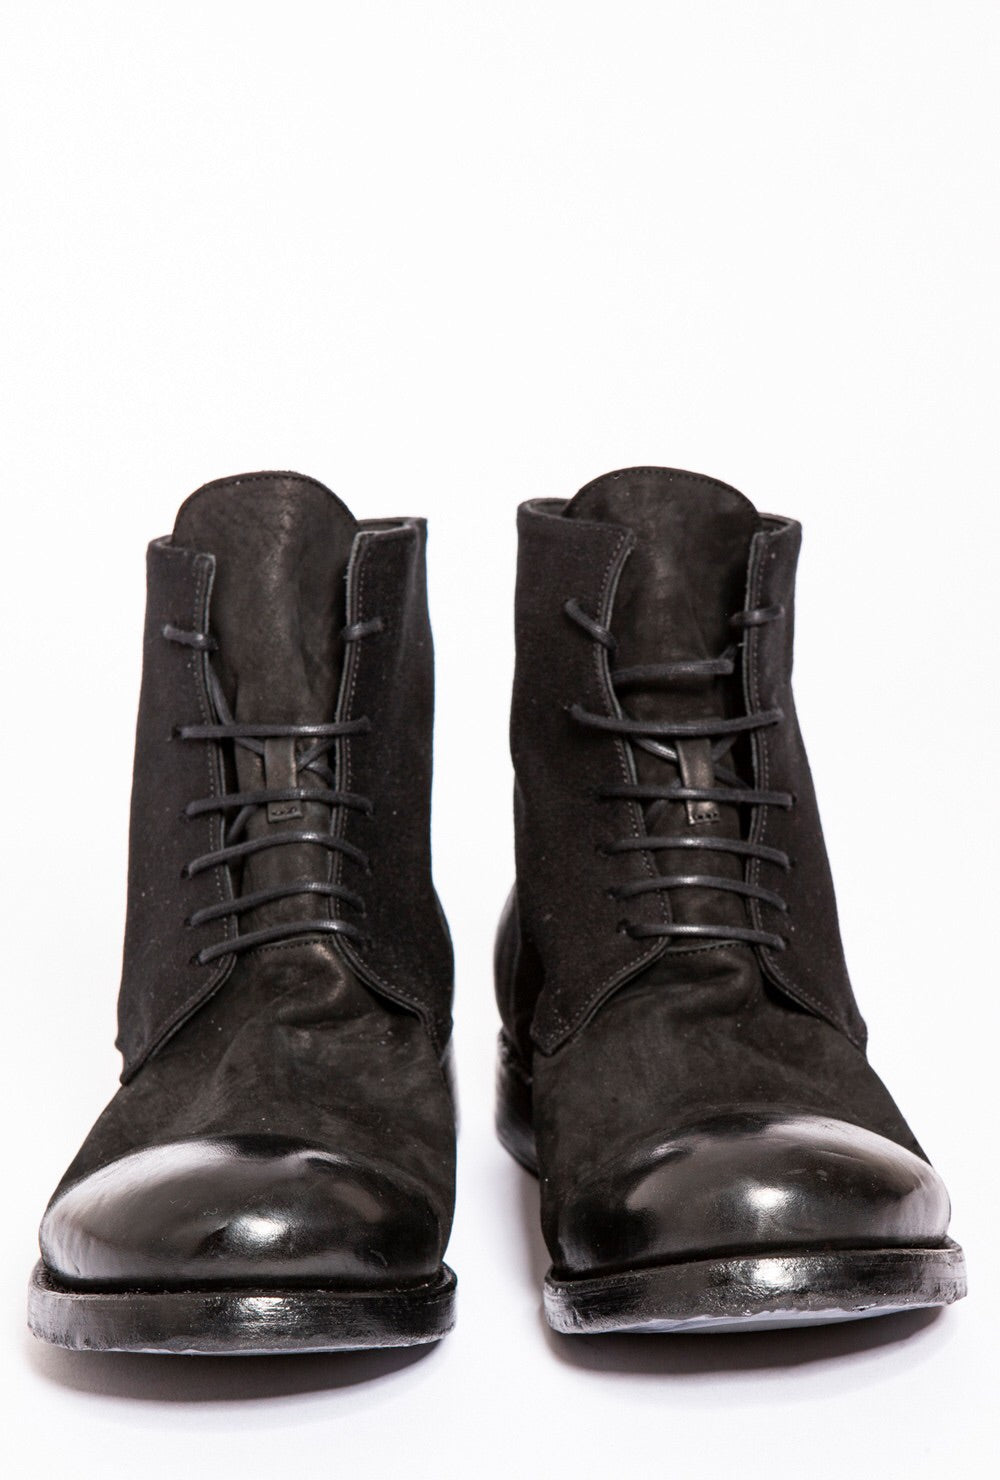 Hannes Roether / Last Conspiracy Black Boot - LAST SIZES!